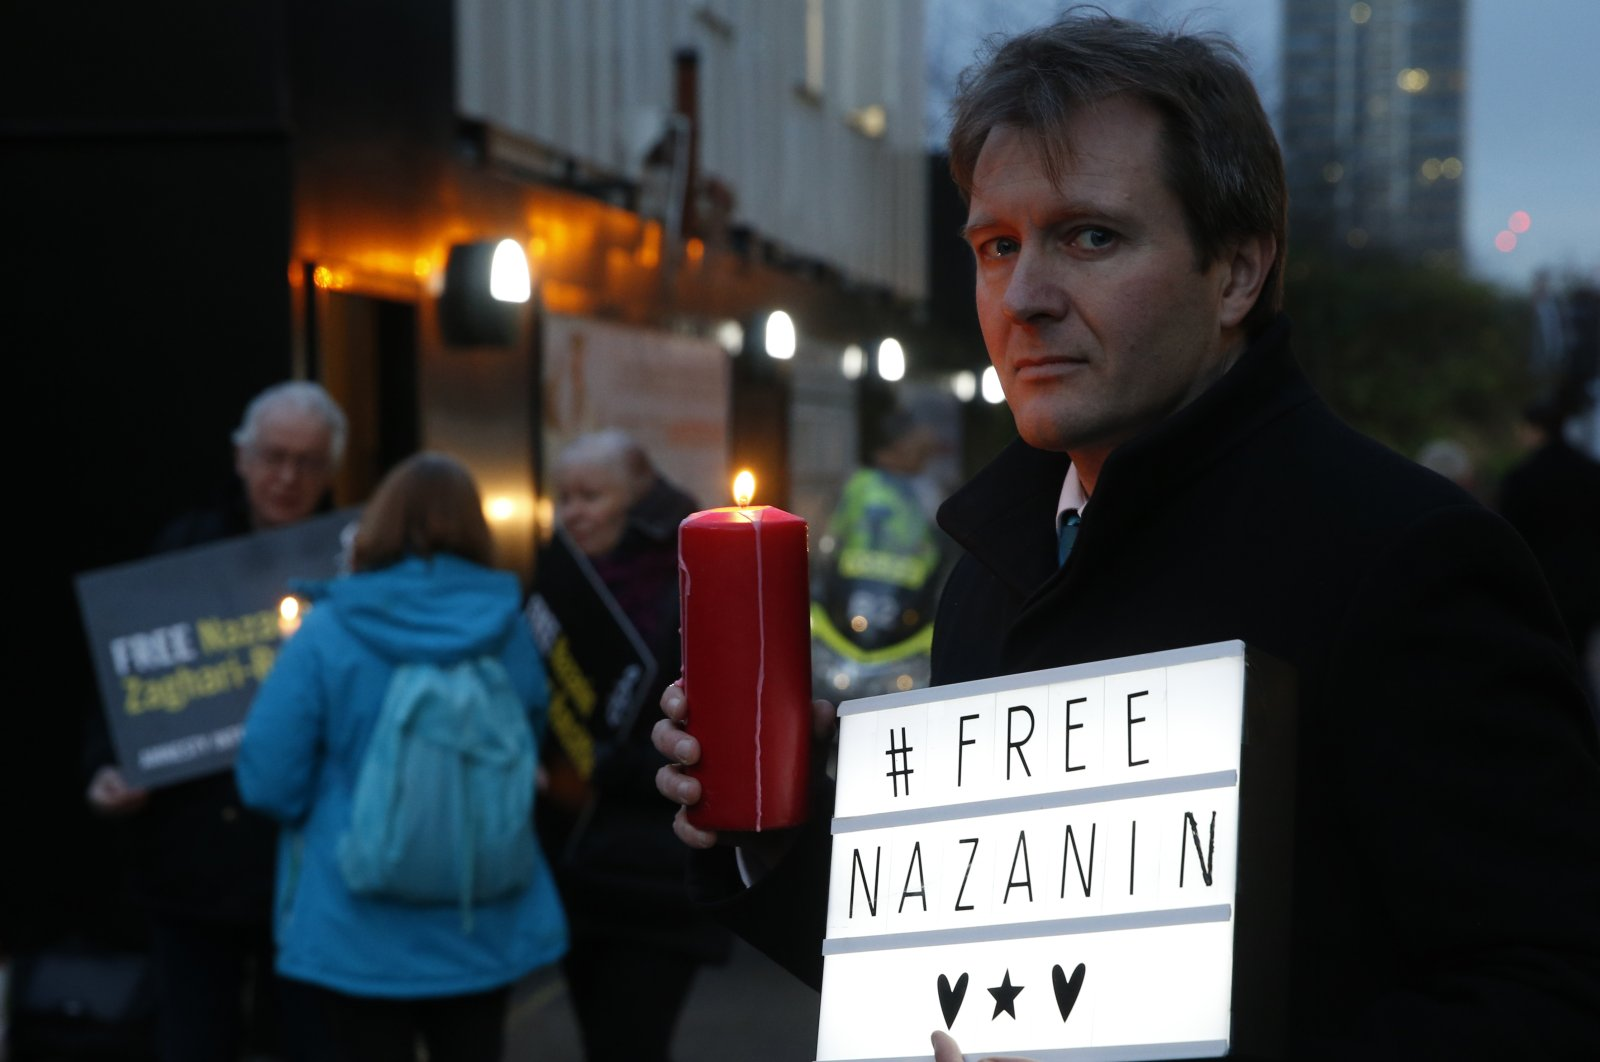 In this Jan. 16, 2017 file photo, Richard Ratcliffe, husband of imprisoned British-Iranian dual national Nazanin Zaghari-Ratcliffe, poses during an Amnesty International led vigil outside the Iranian Embassy in London. (AP Photo)